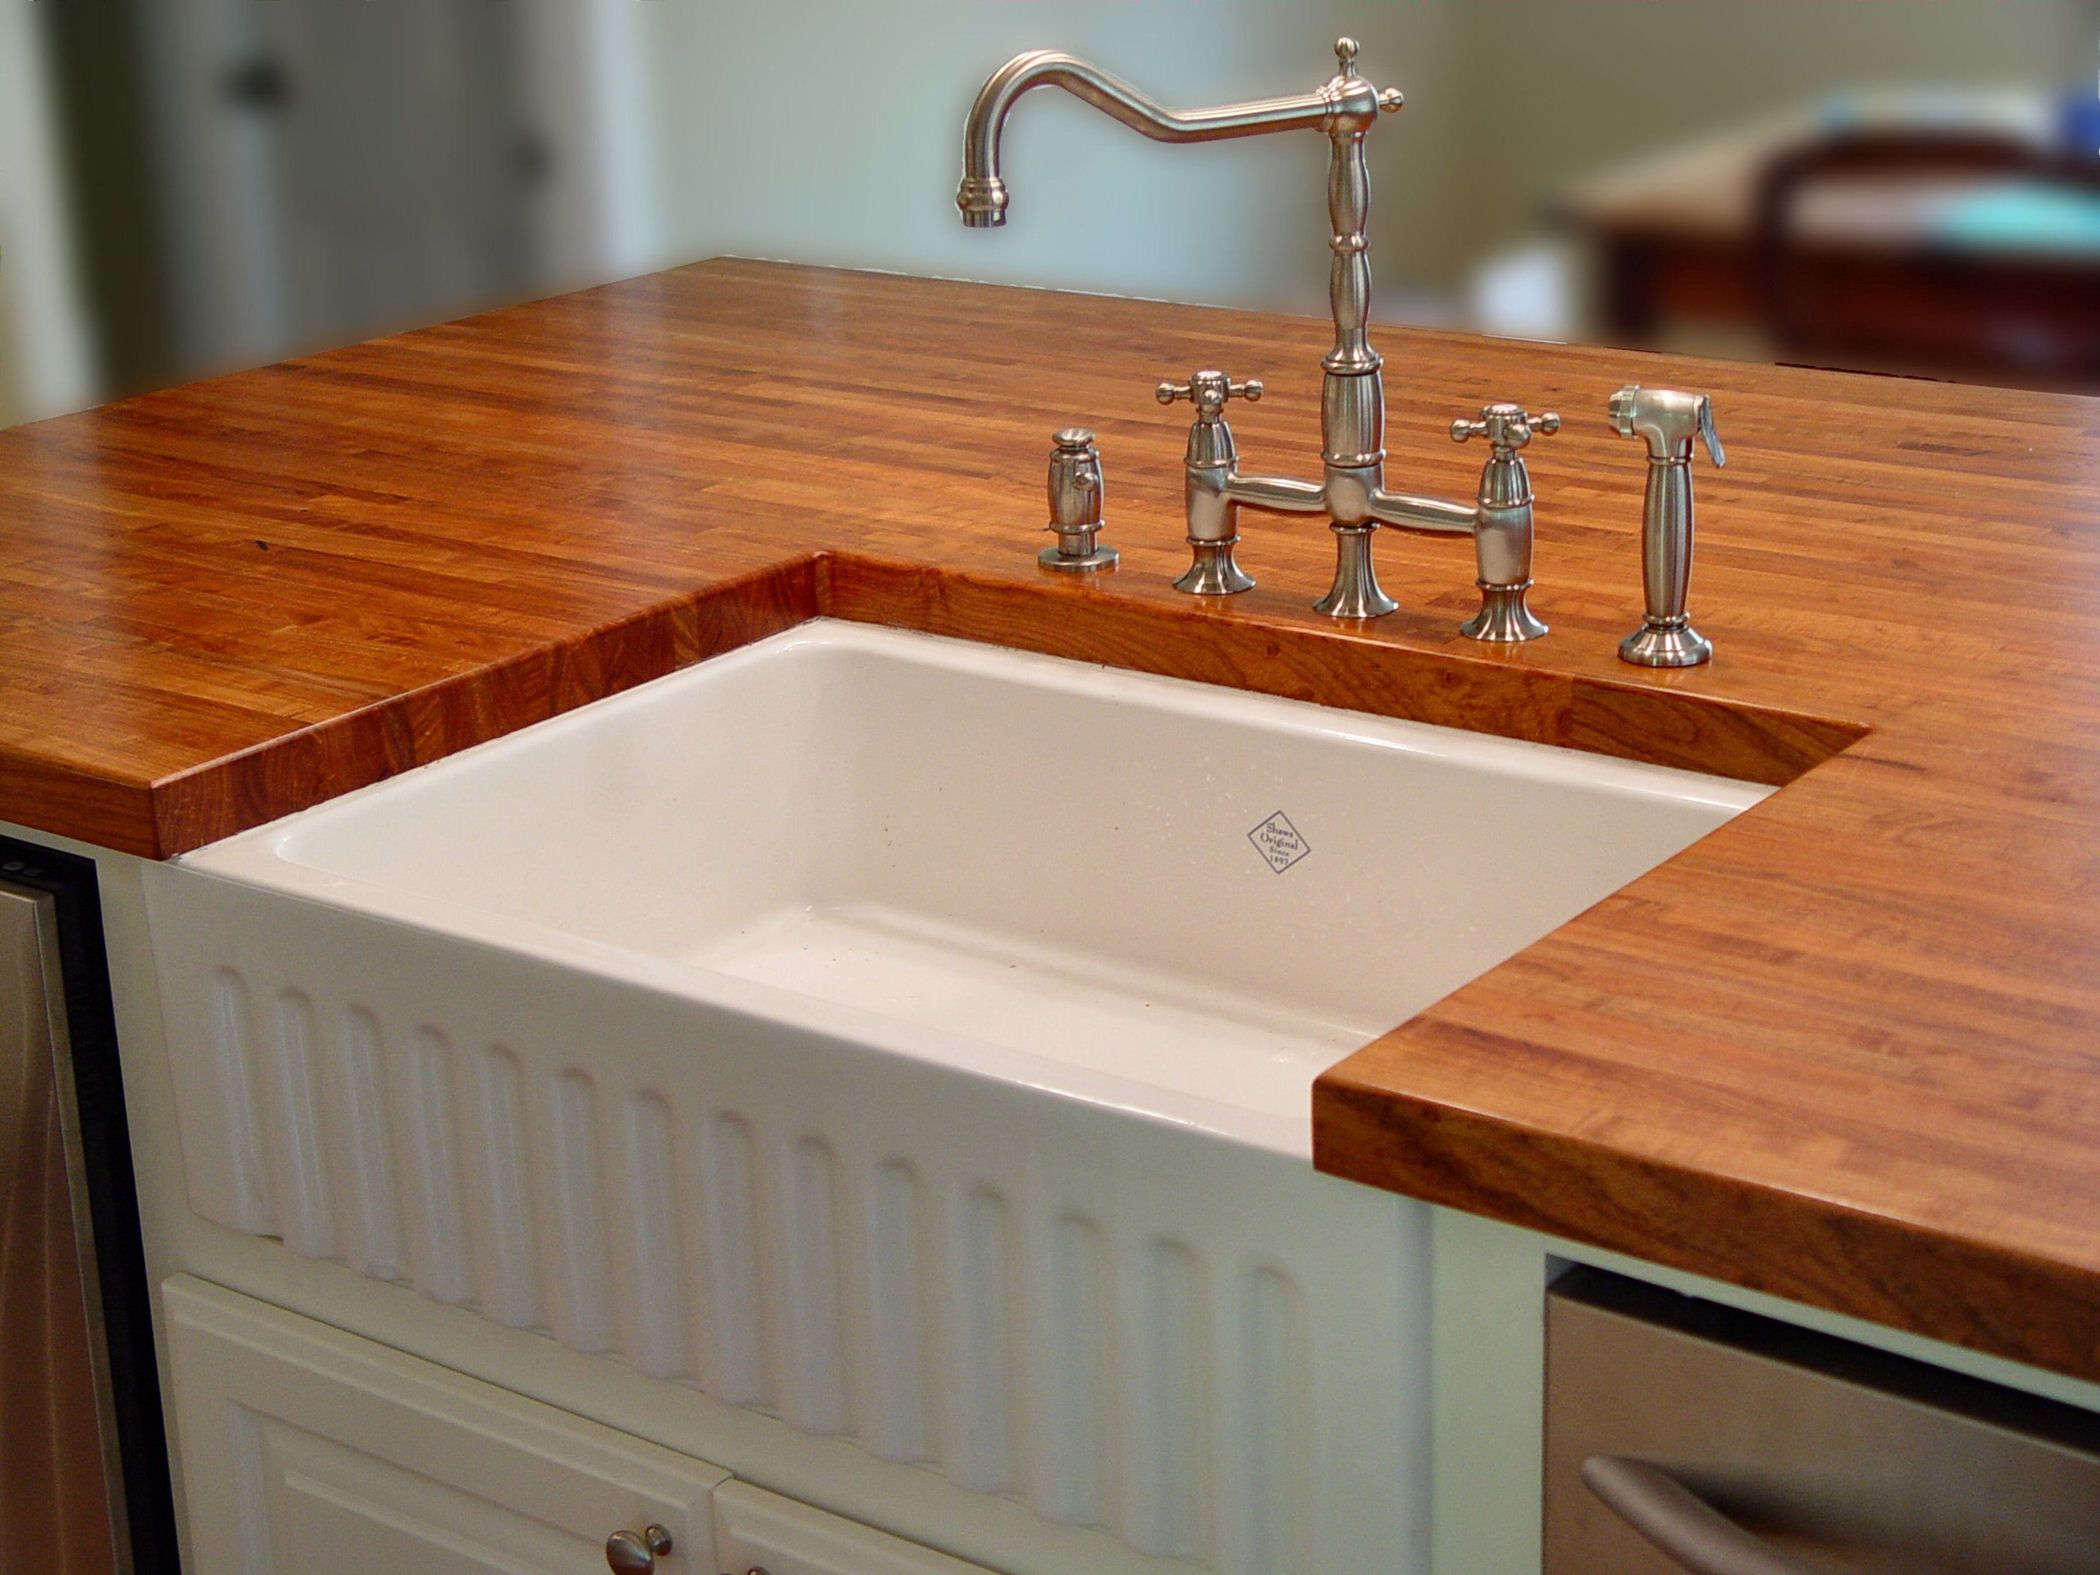 How To Cut A Hole In Granite Countertop Sink Cutouts In Custom Wood Countertops